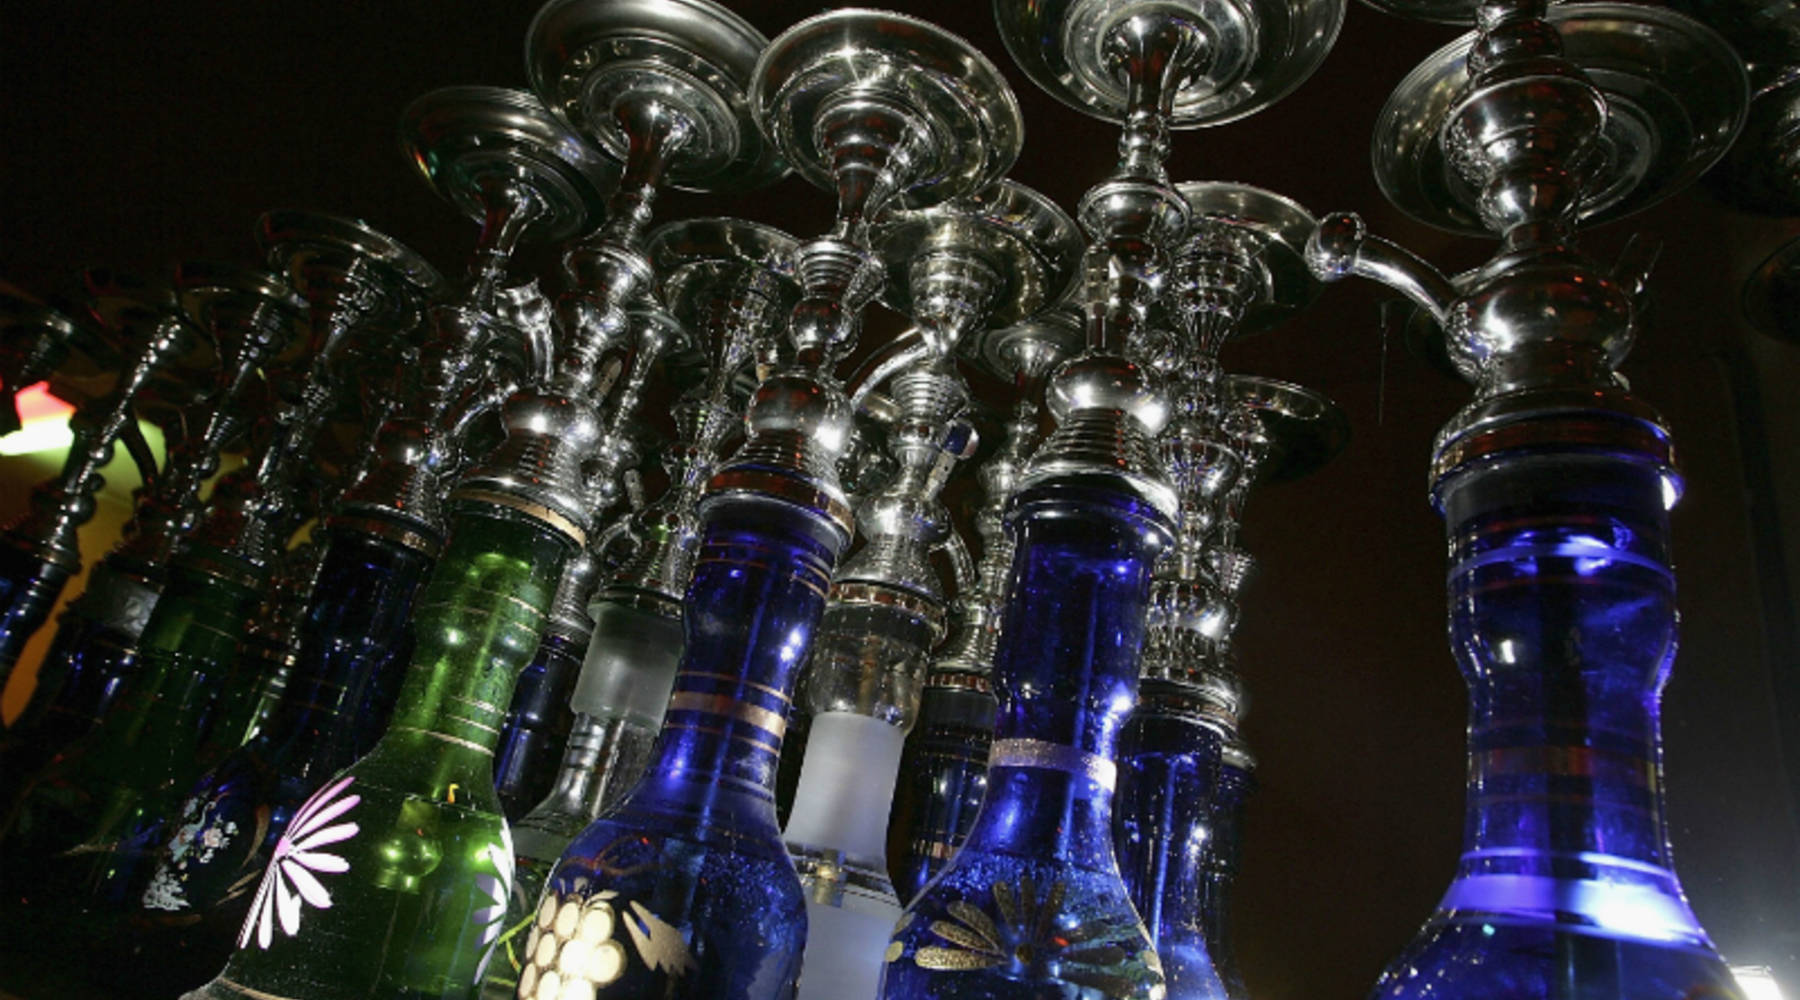 FDA rules spell changes for vaping and hookah lounges